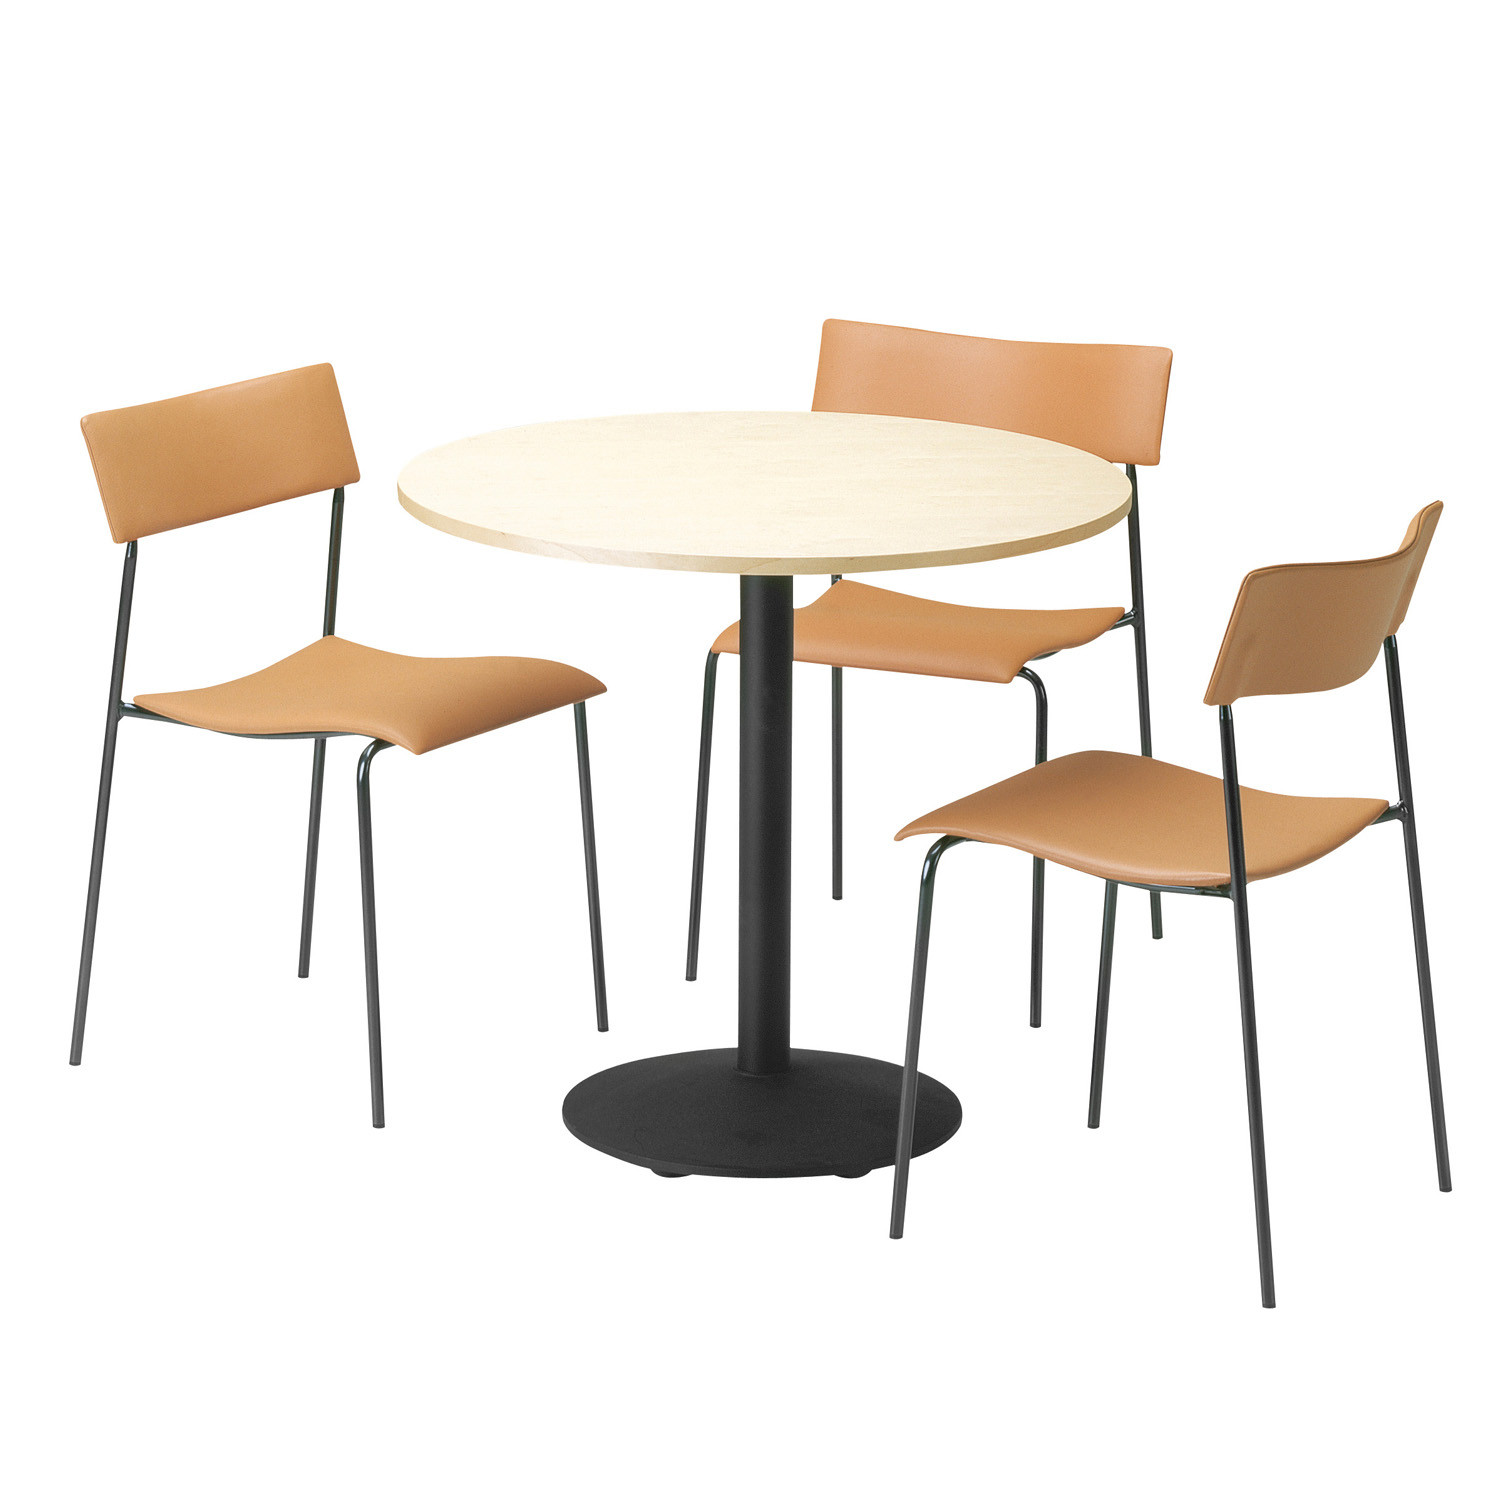 campus cafe table breakout furniture by lammhults. Black Bedroom Furniture Sets. Home Design Ideas